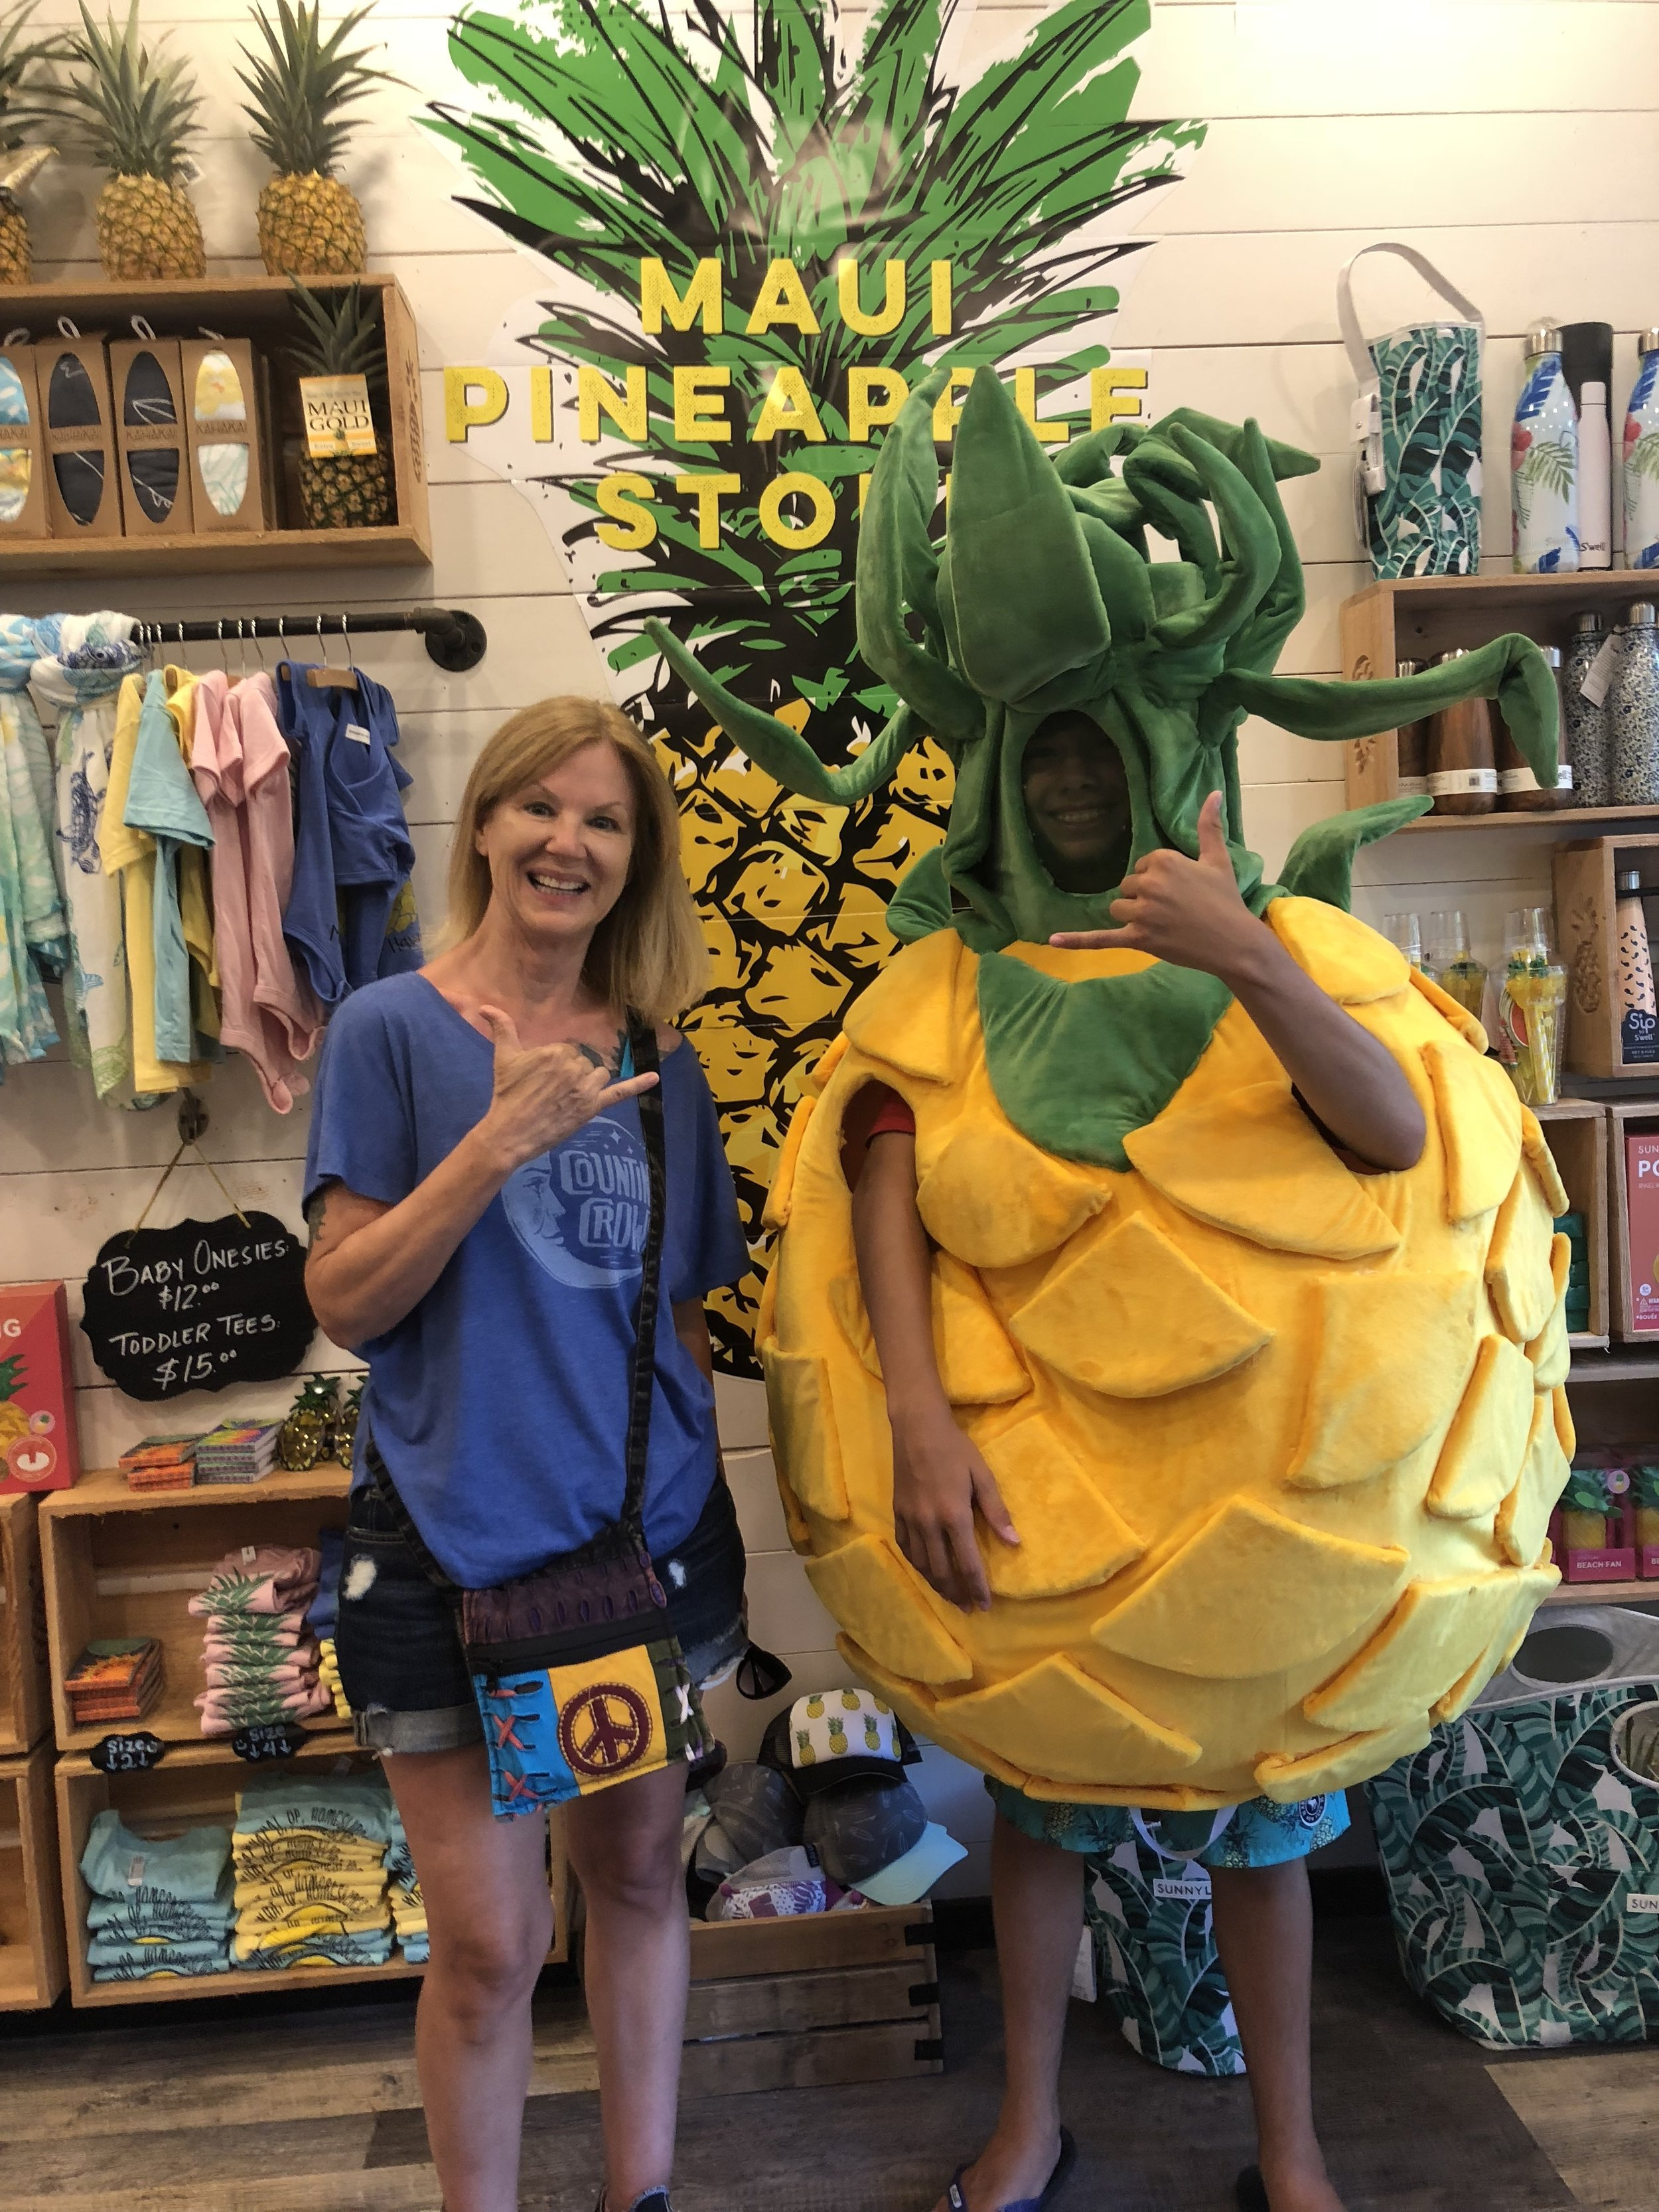 Pineapple Boy! When I had to leave my cabana, I went exploring. Just a nice kid walking by the store with his family. He saw the costume in the back of the shop and asked if he could try it on. I asked if he'd take a picture with me, and before we were done, a long line of people were waiting for pics!